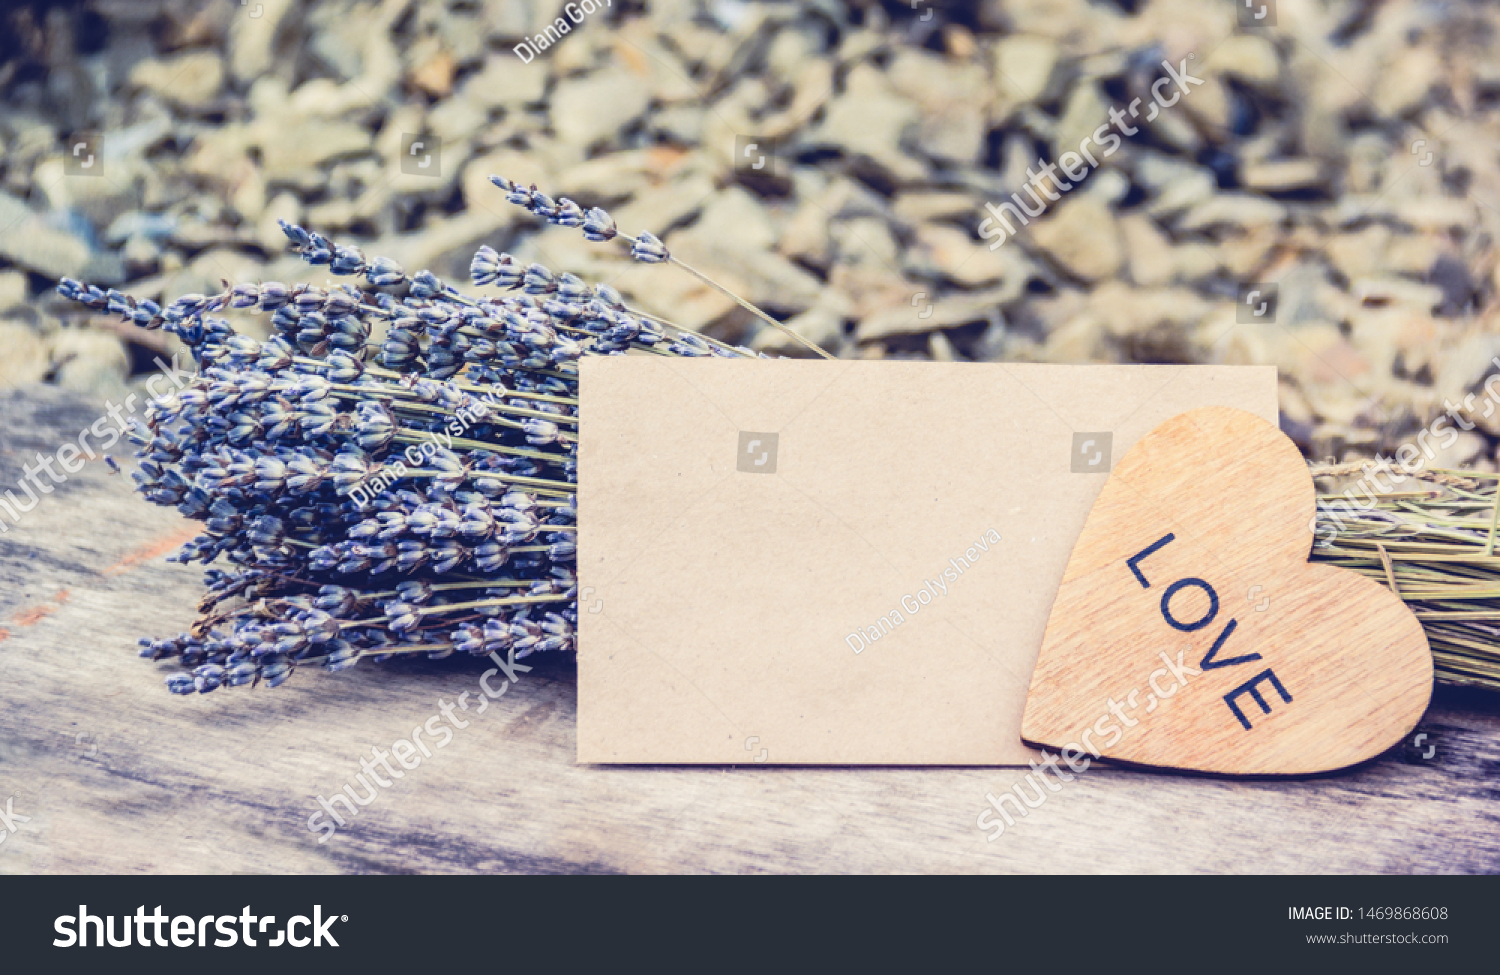 Lavender and heart. lavender flowers and love note. Romantic background. Mockup romantic letter #1469868608